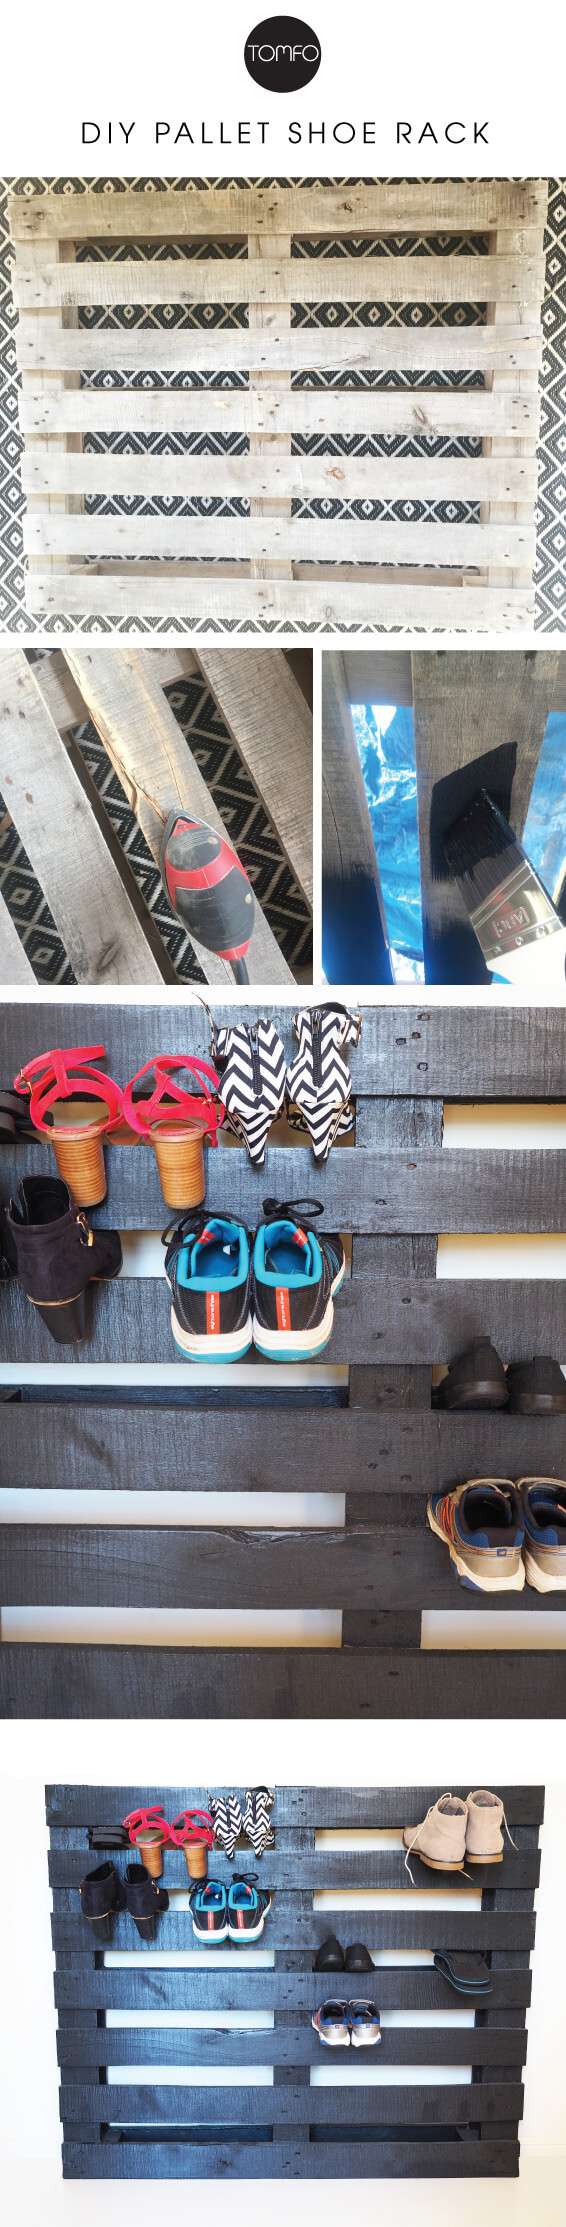 DIY-Easy-Pallet-shoe-rack-Tomfo